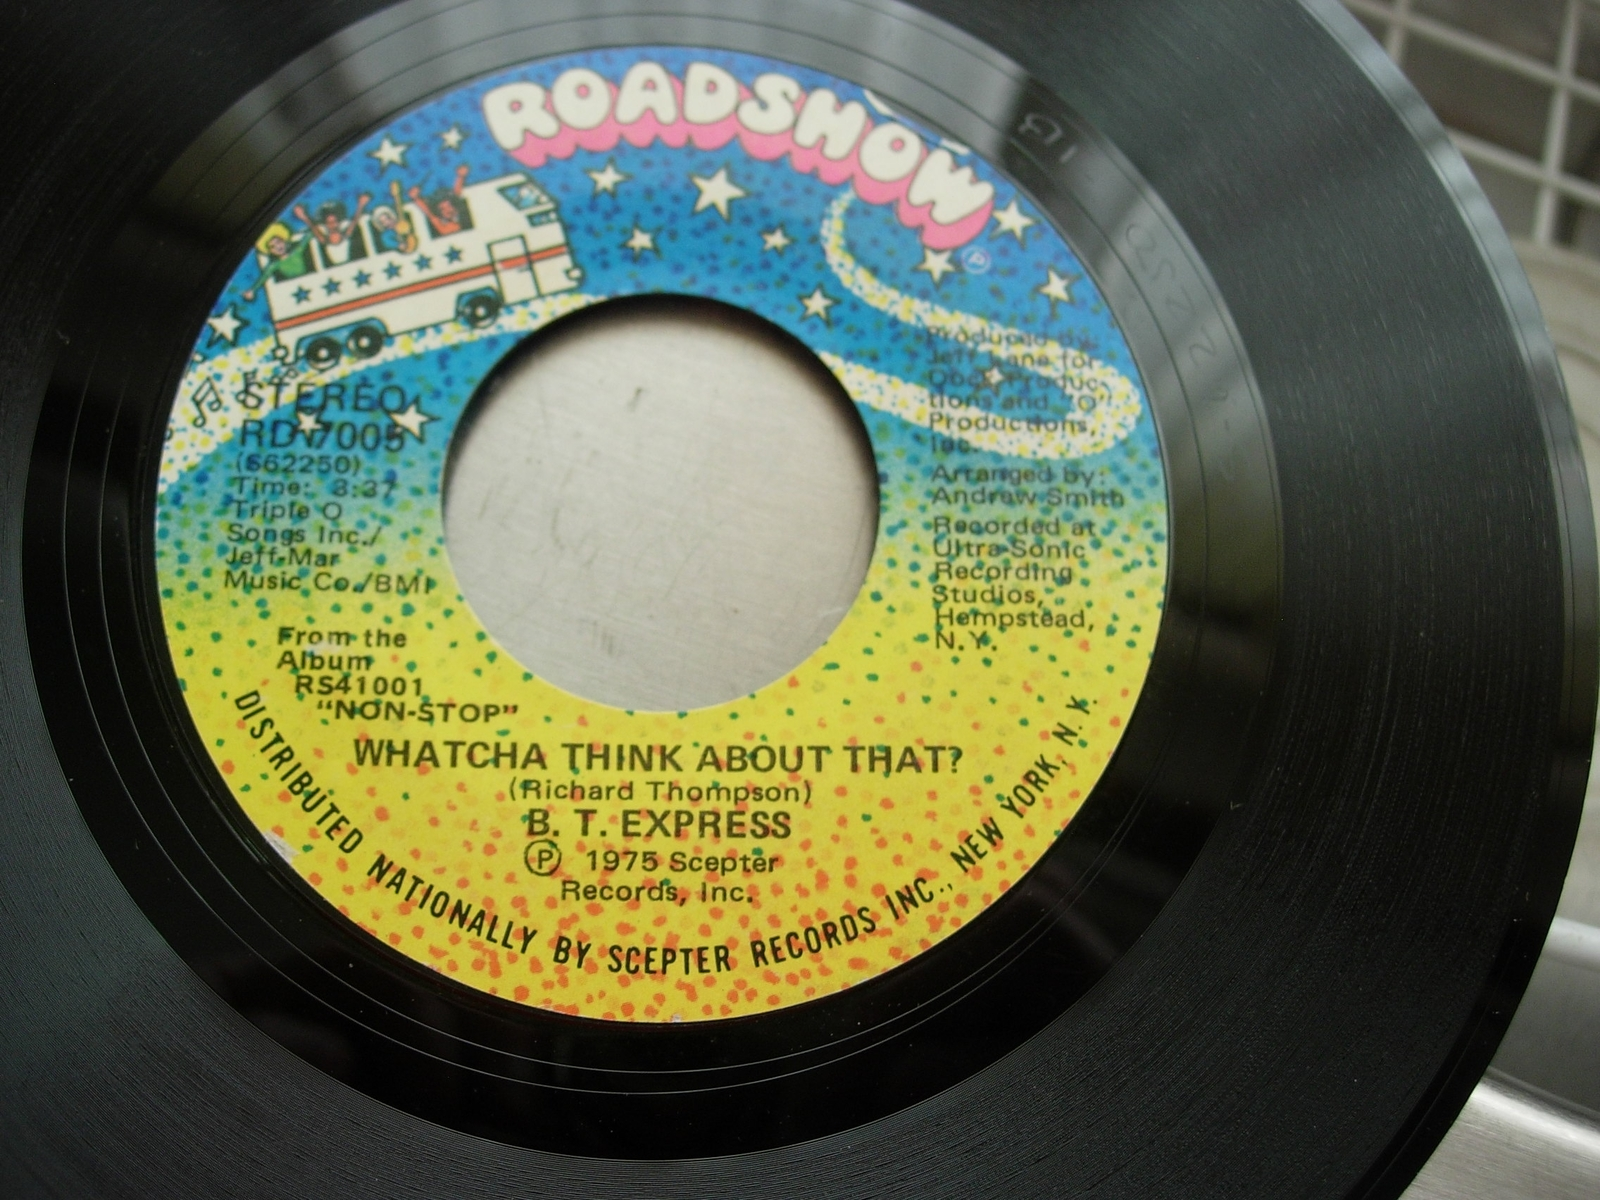 B. T. EXPRESS Close to You / Whatcha Think About That - Roadshow Records RD 7006